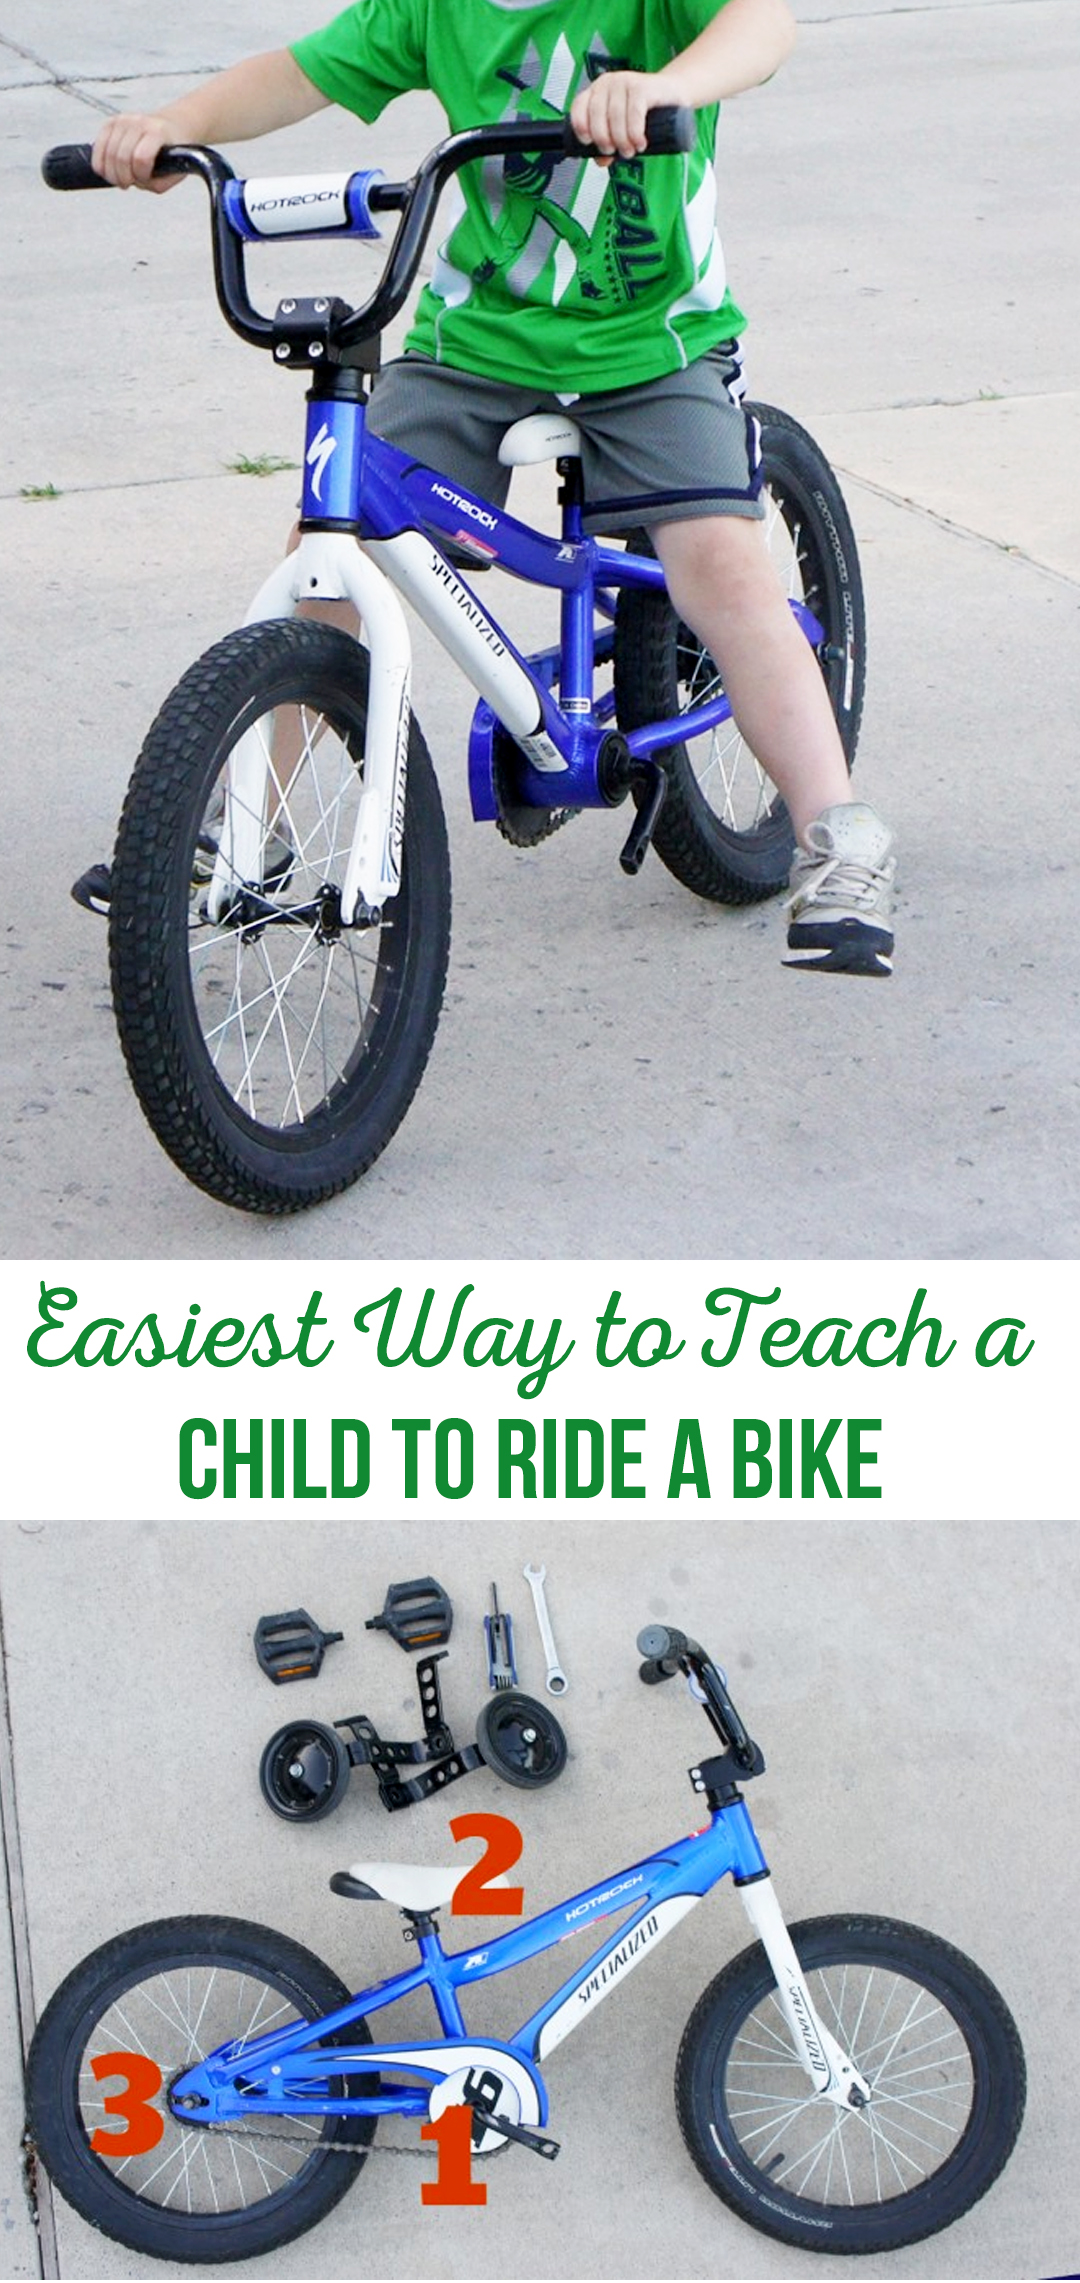 Easiest Way to Teach a Child to Ride a Bike